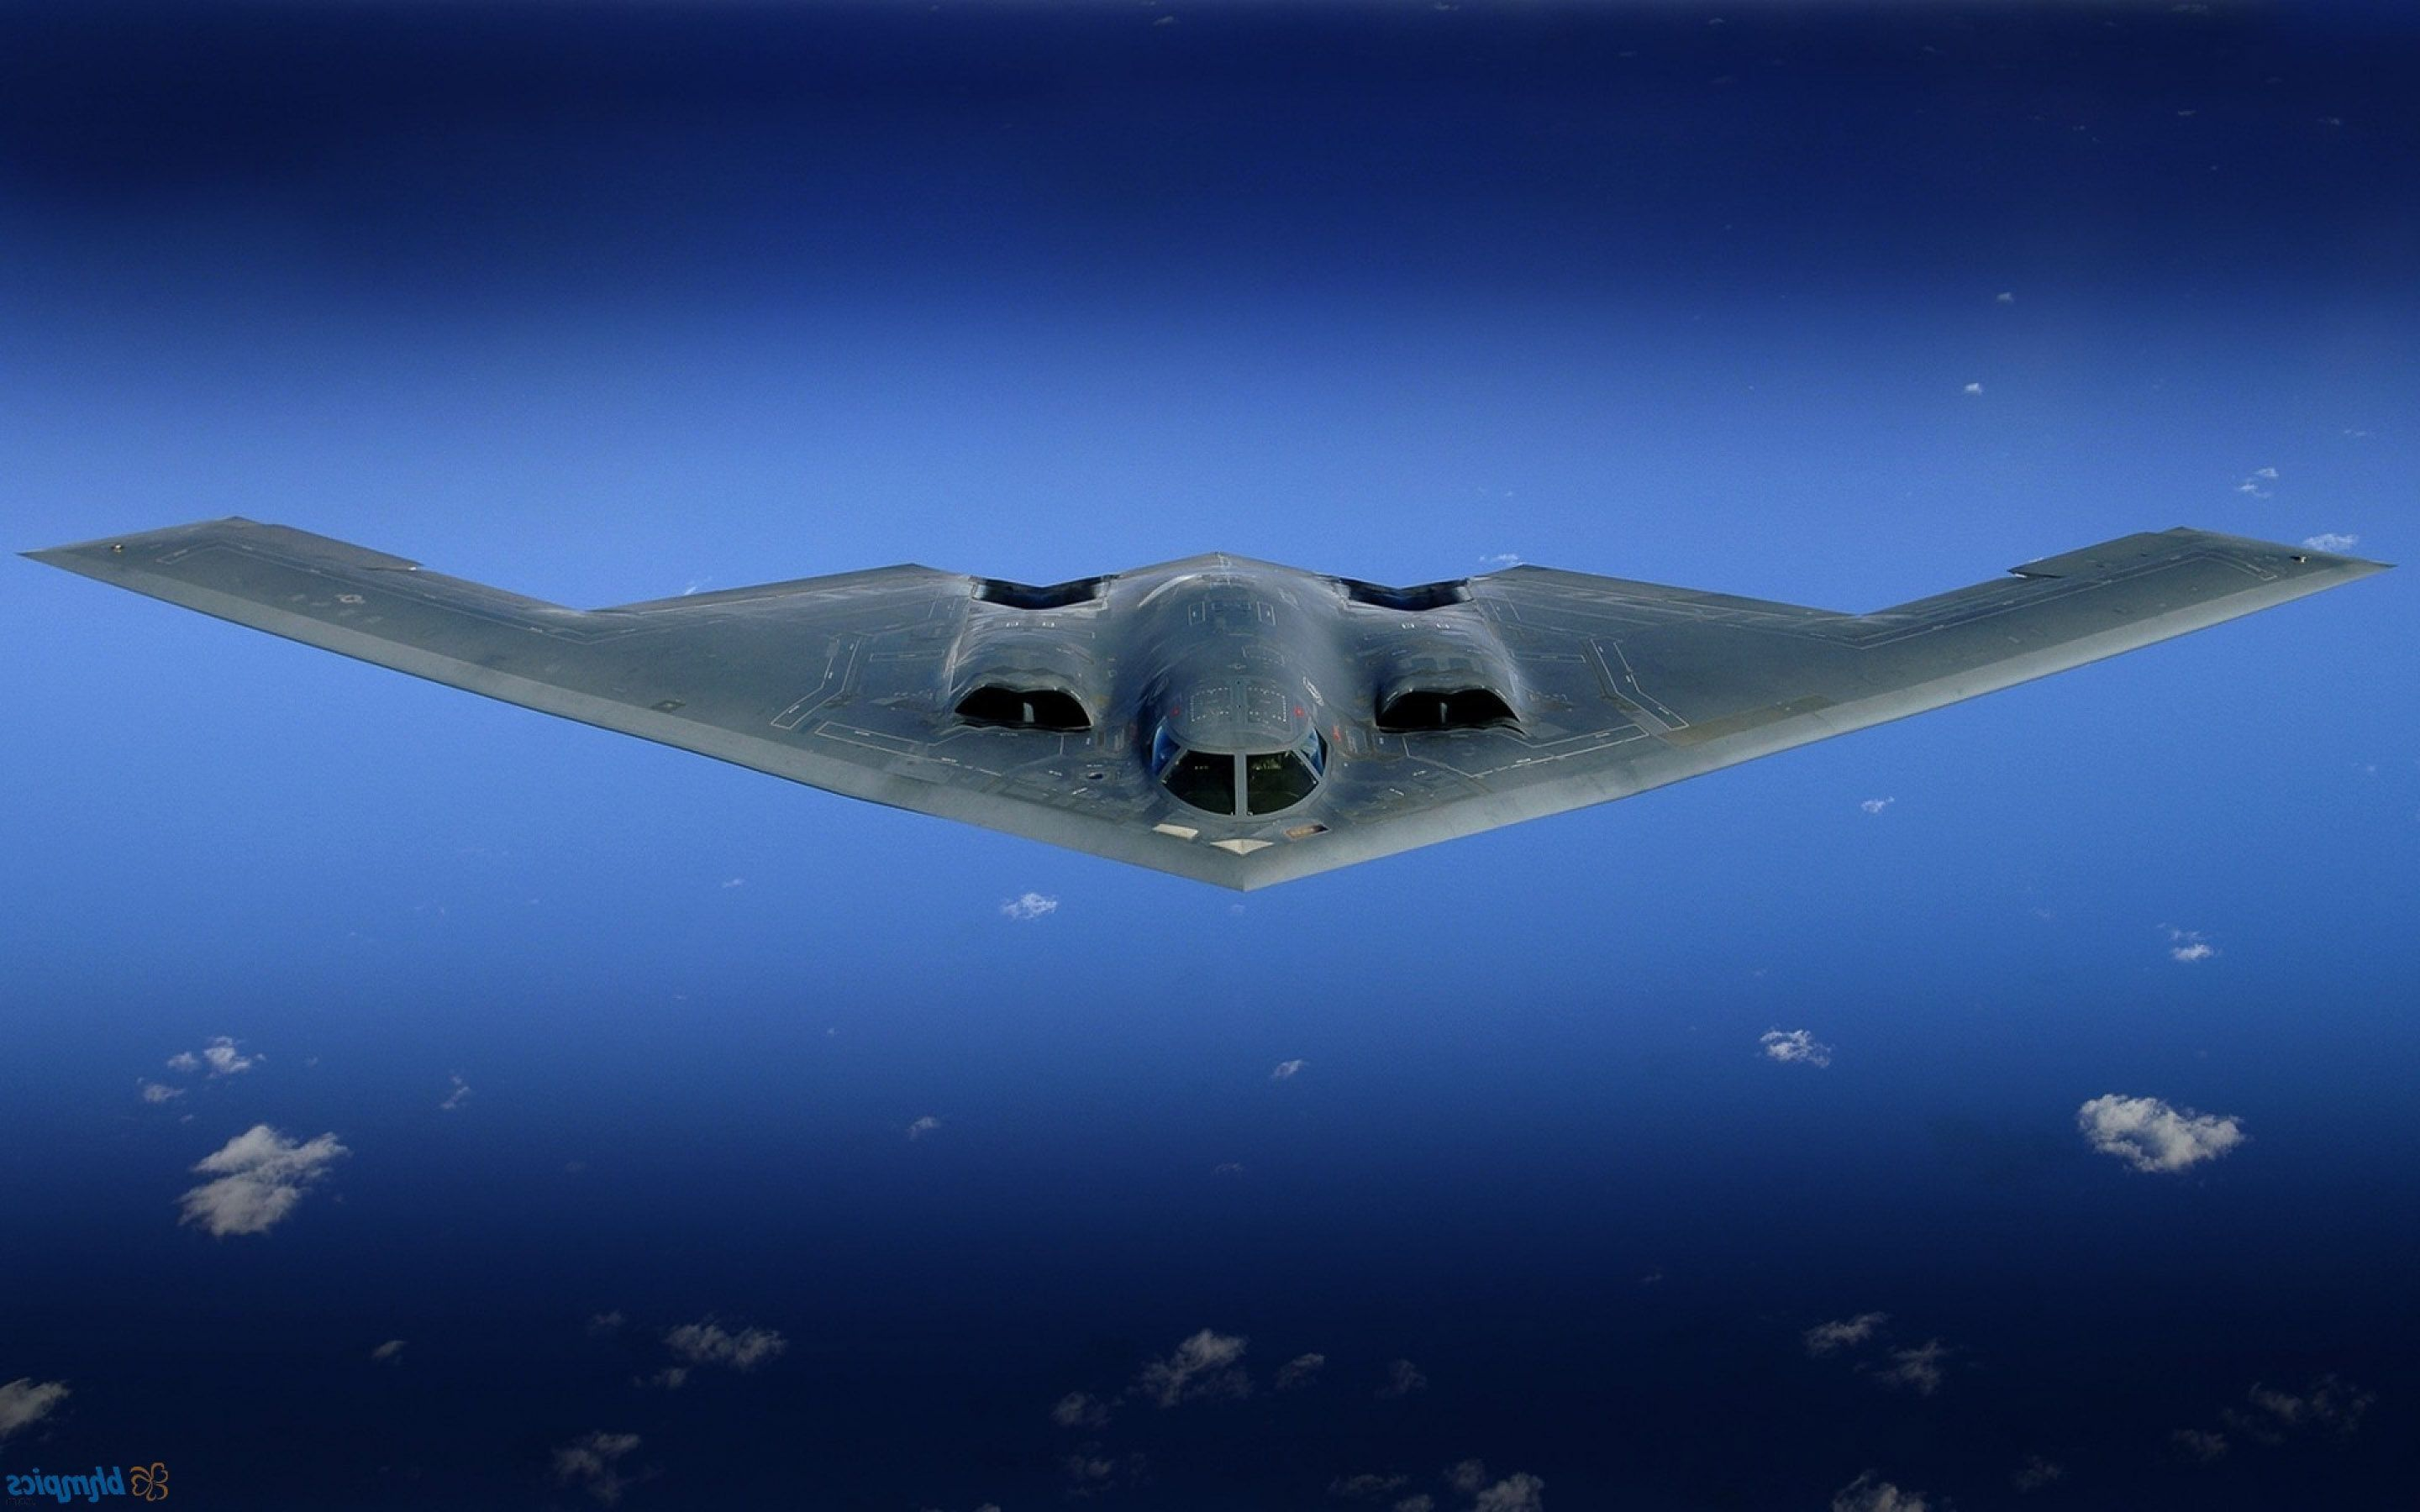 Stealth Aircraft Wallpapers and Background Images   stmednet 2880x1800